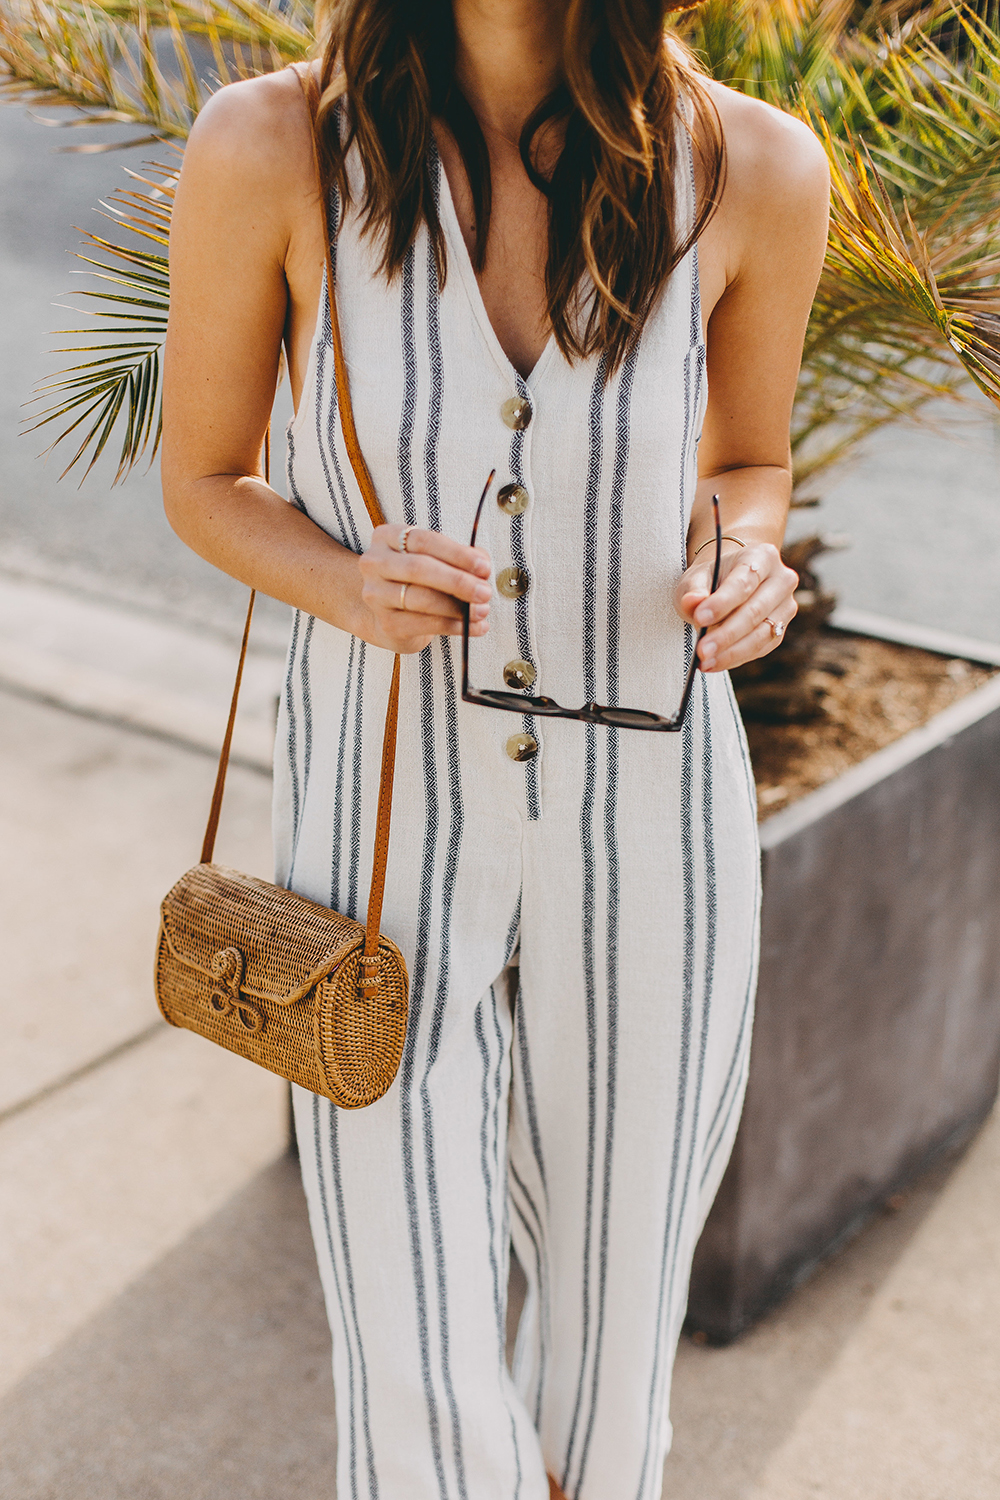 Jumpsuit Of My Dreams Livvyland Austin Fashion And Style Blogger